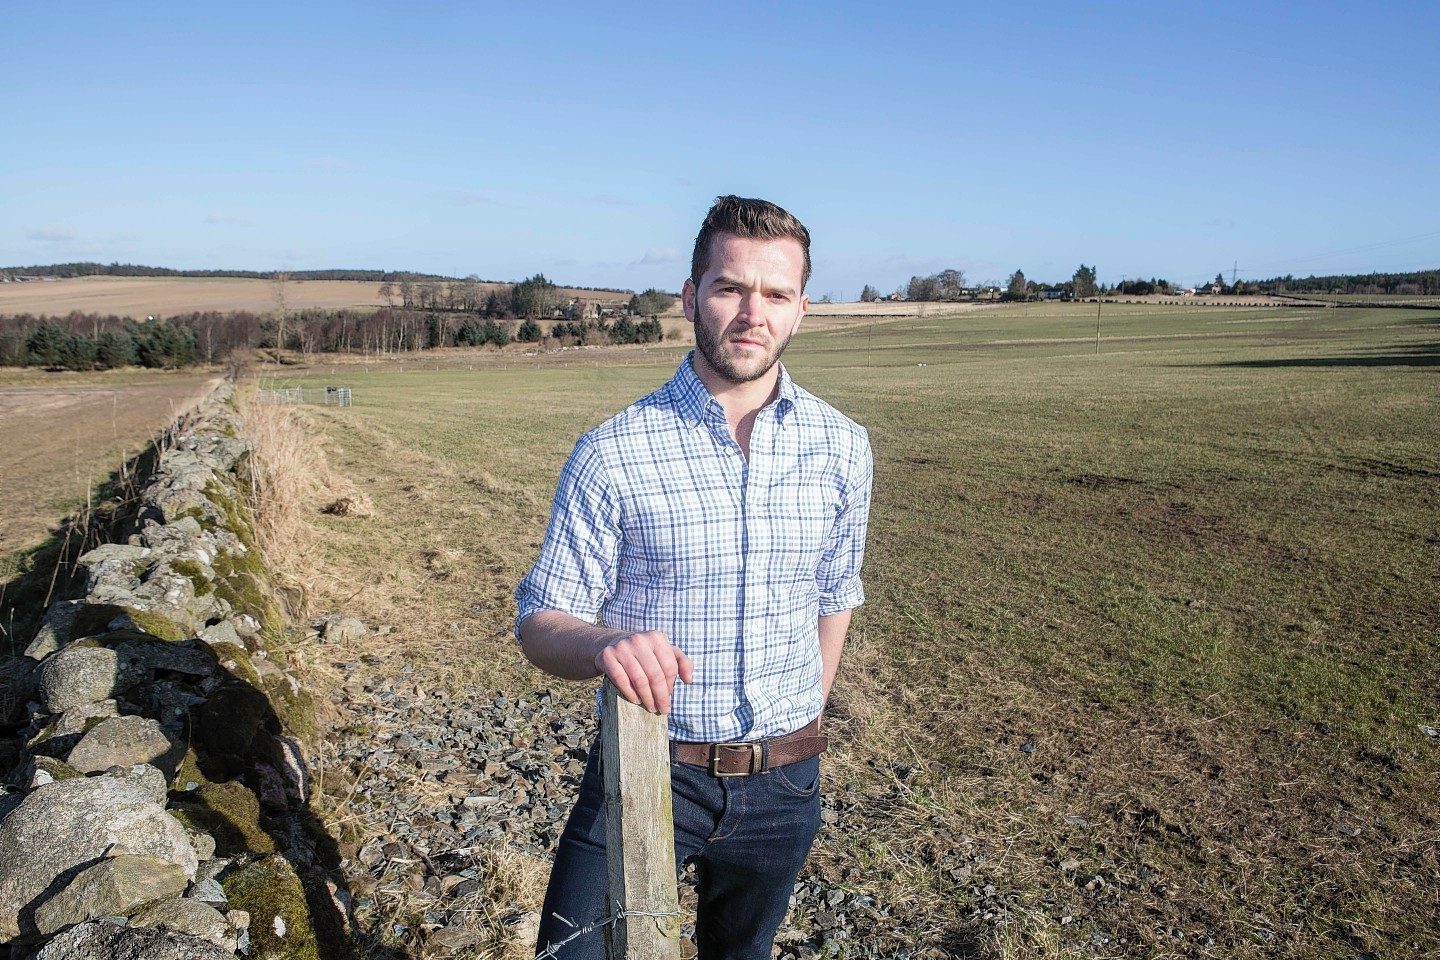 Rory Gregor at his Kemnay field where the sheep were stolen